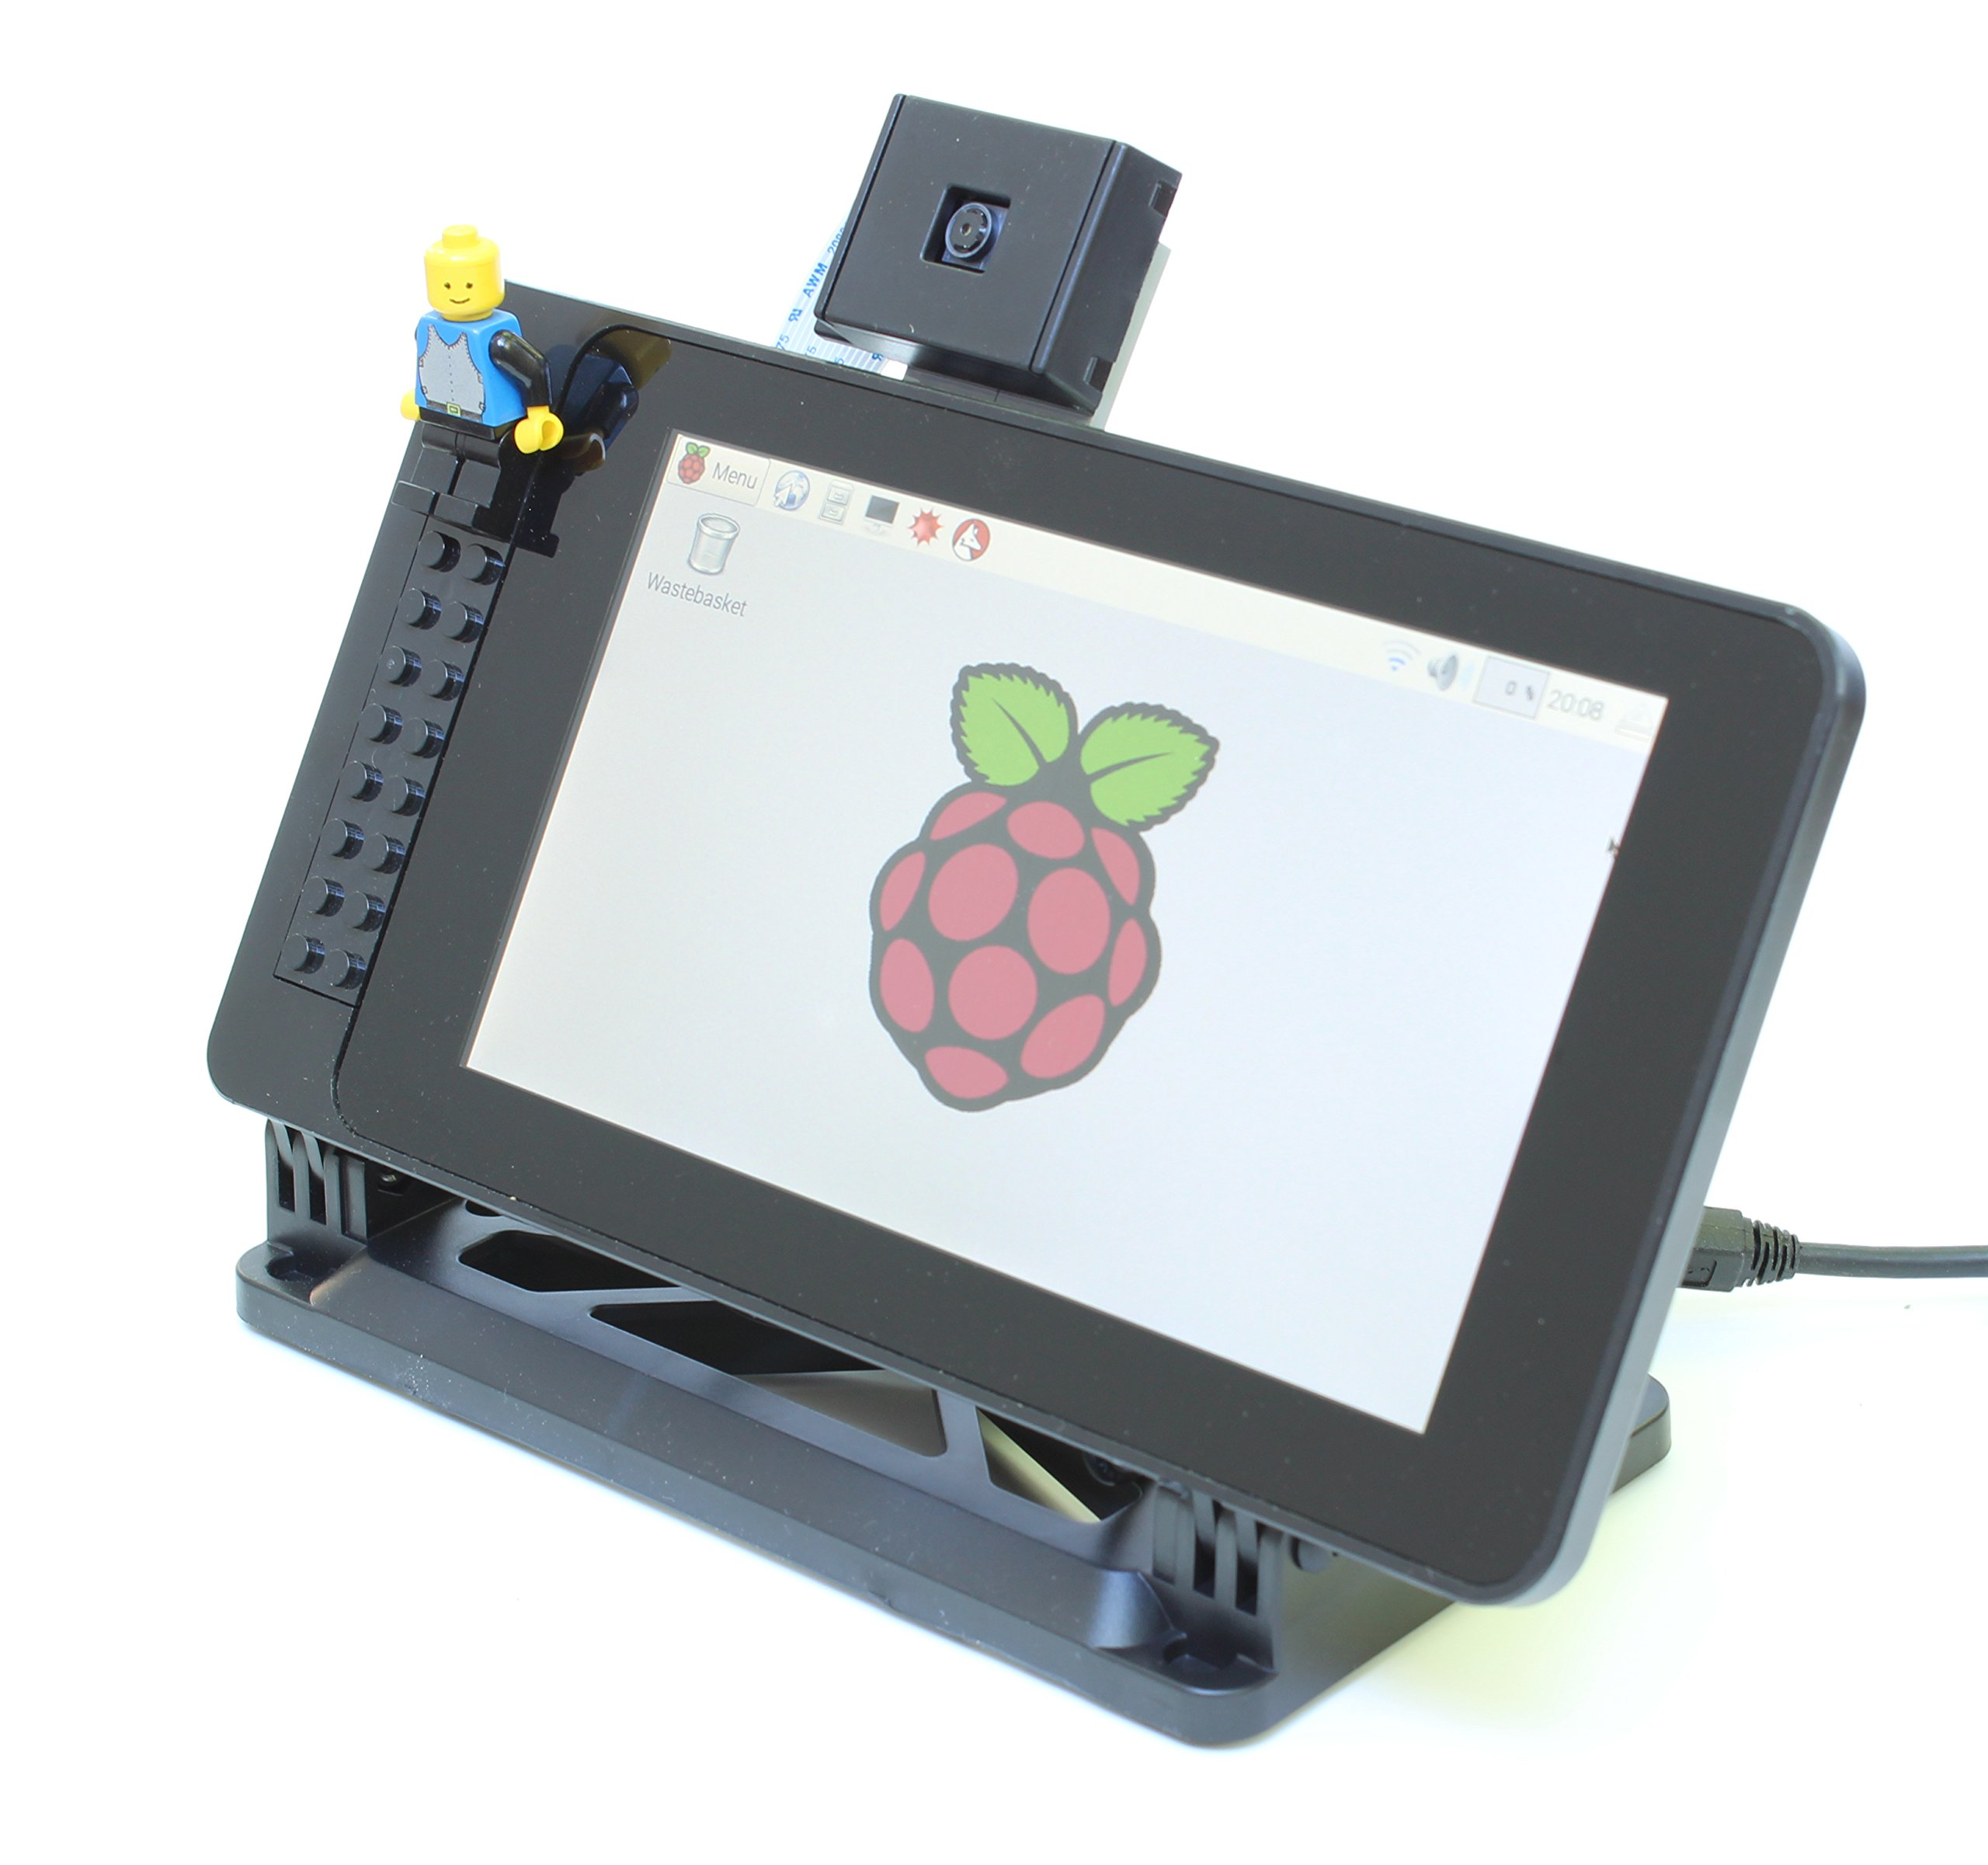 Case for The Official Raspberry Pi 7'' Touchscreen Display - Building Block Compatible Front and Adjustable Angle by Smarticase